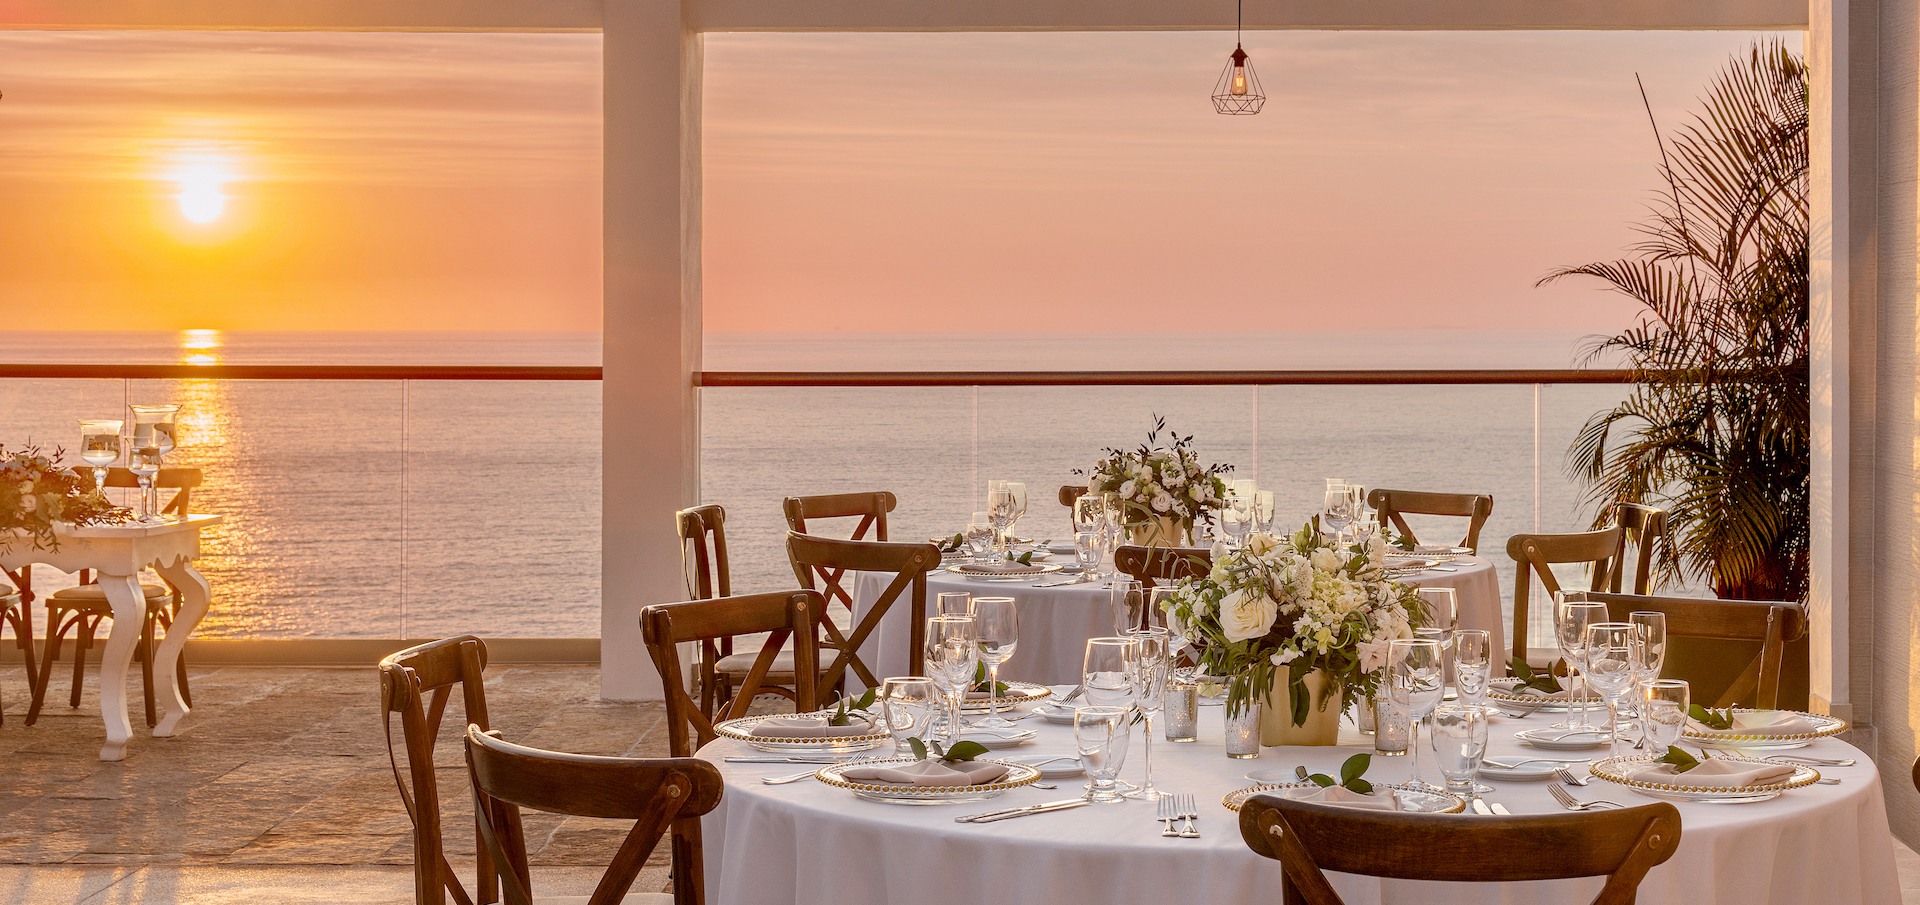 Hyatt-Ziva-Puerto-Vallarta-Sky-Penthouse-Terrace-Weddings-Reception-Sunset-View-4